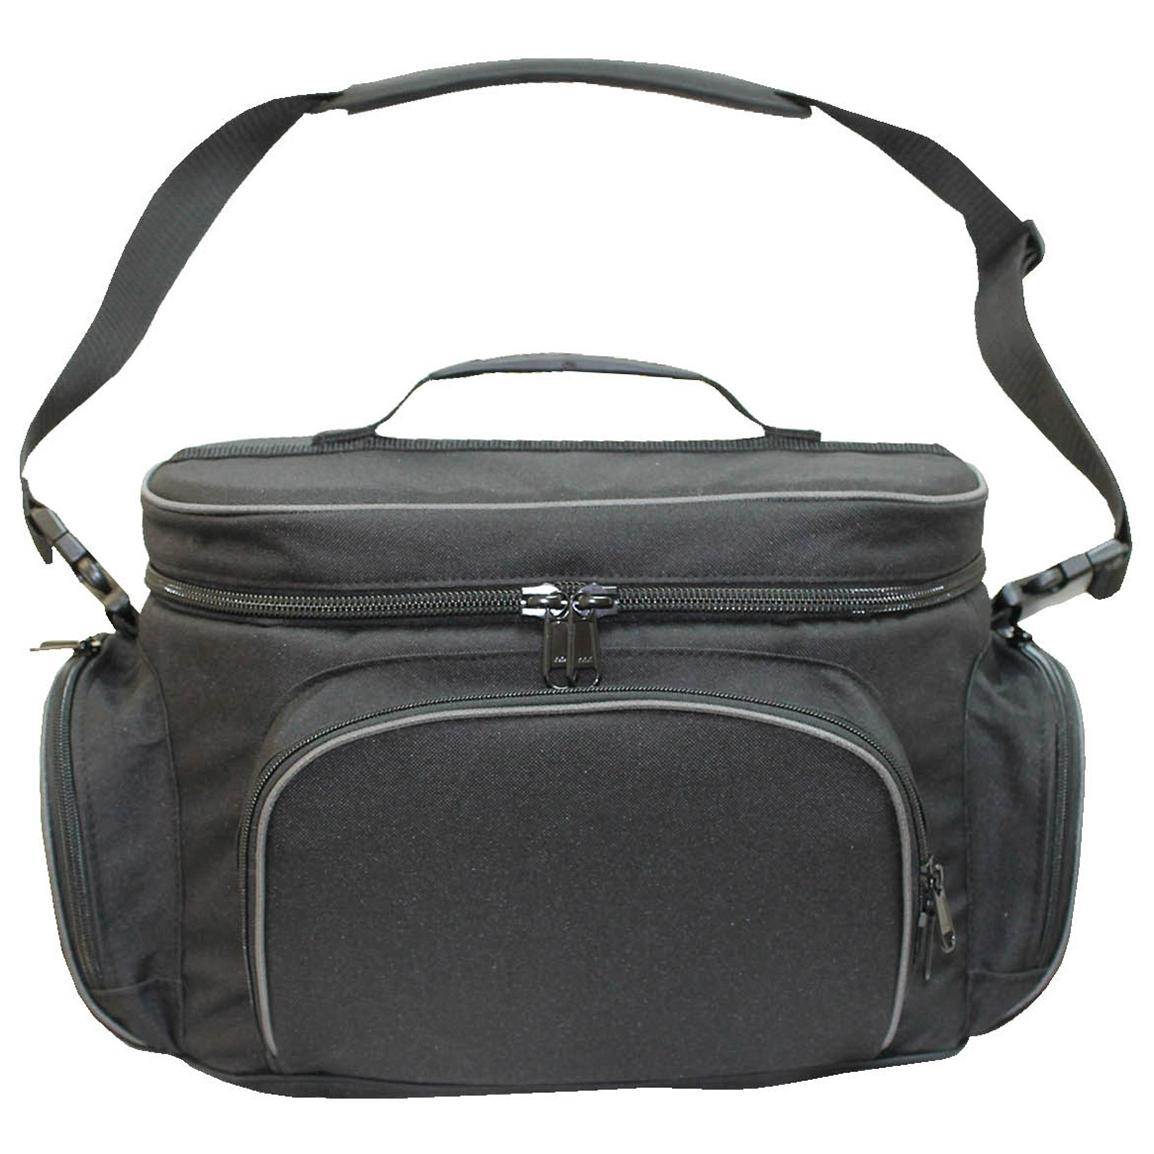 Zipper-close pockets and main compartment